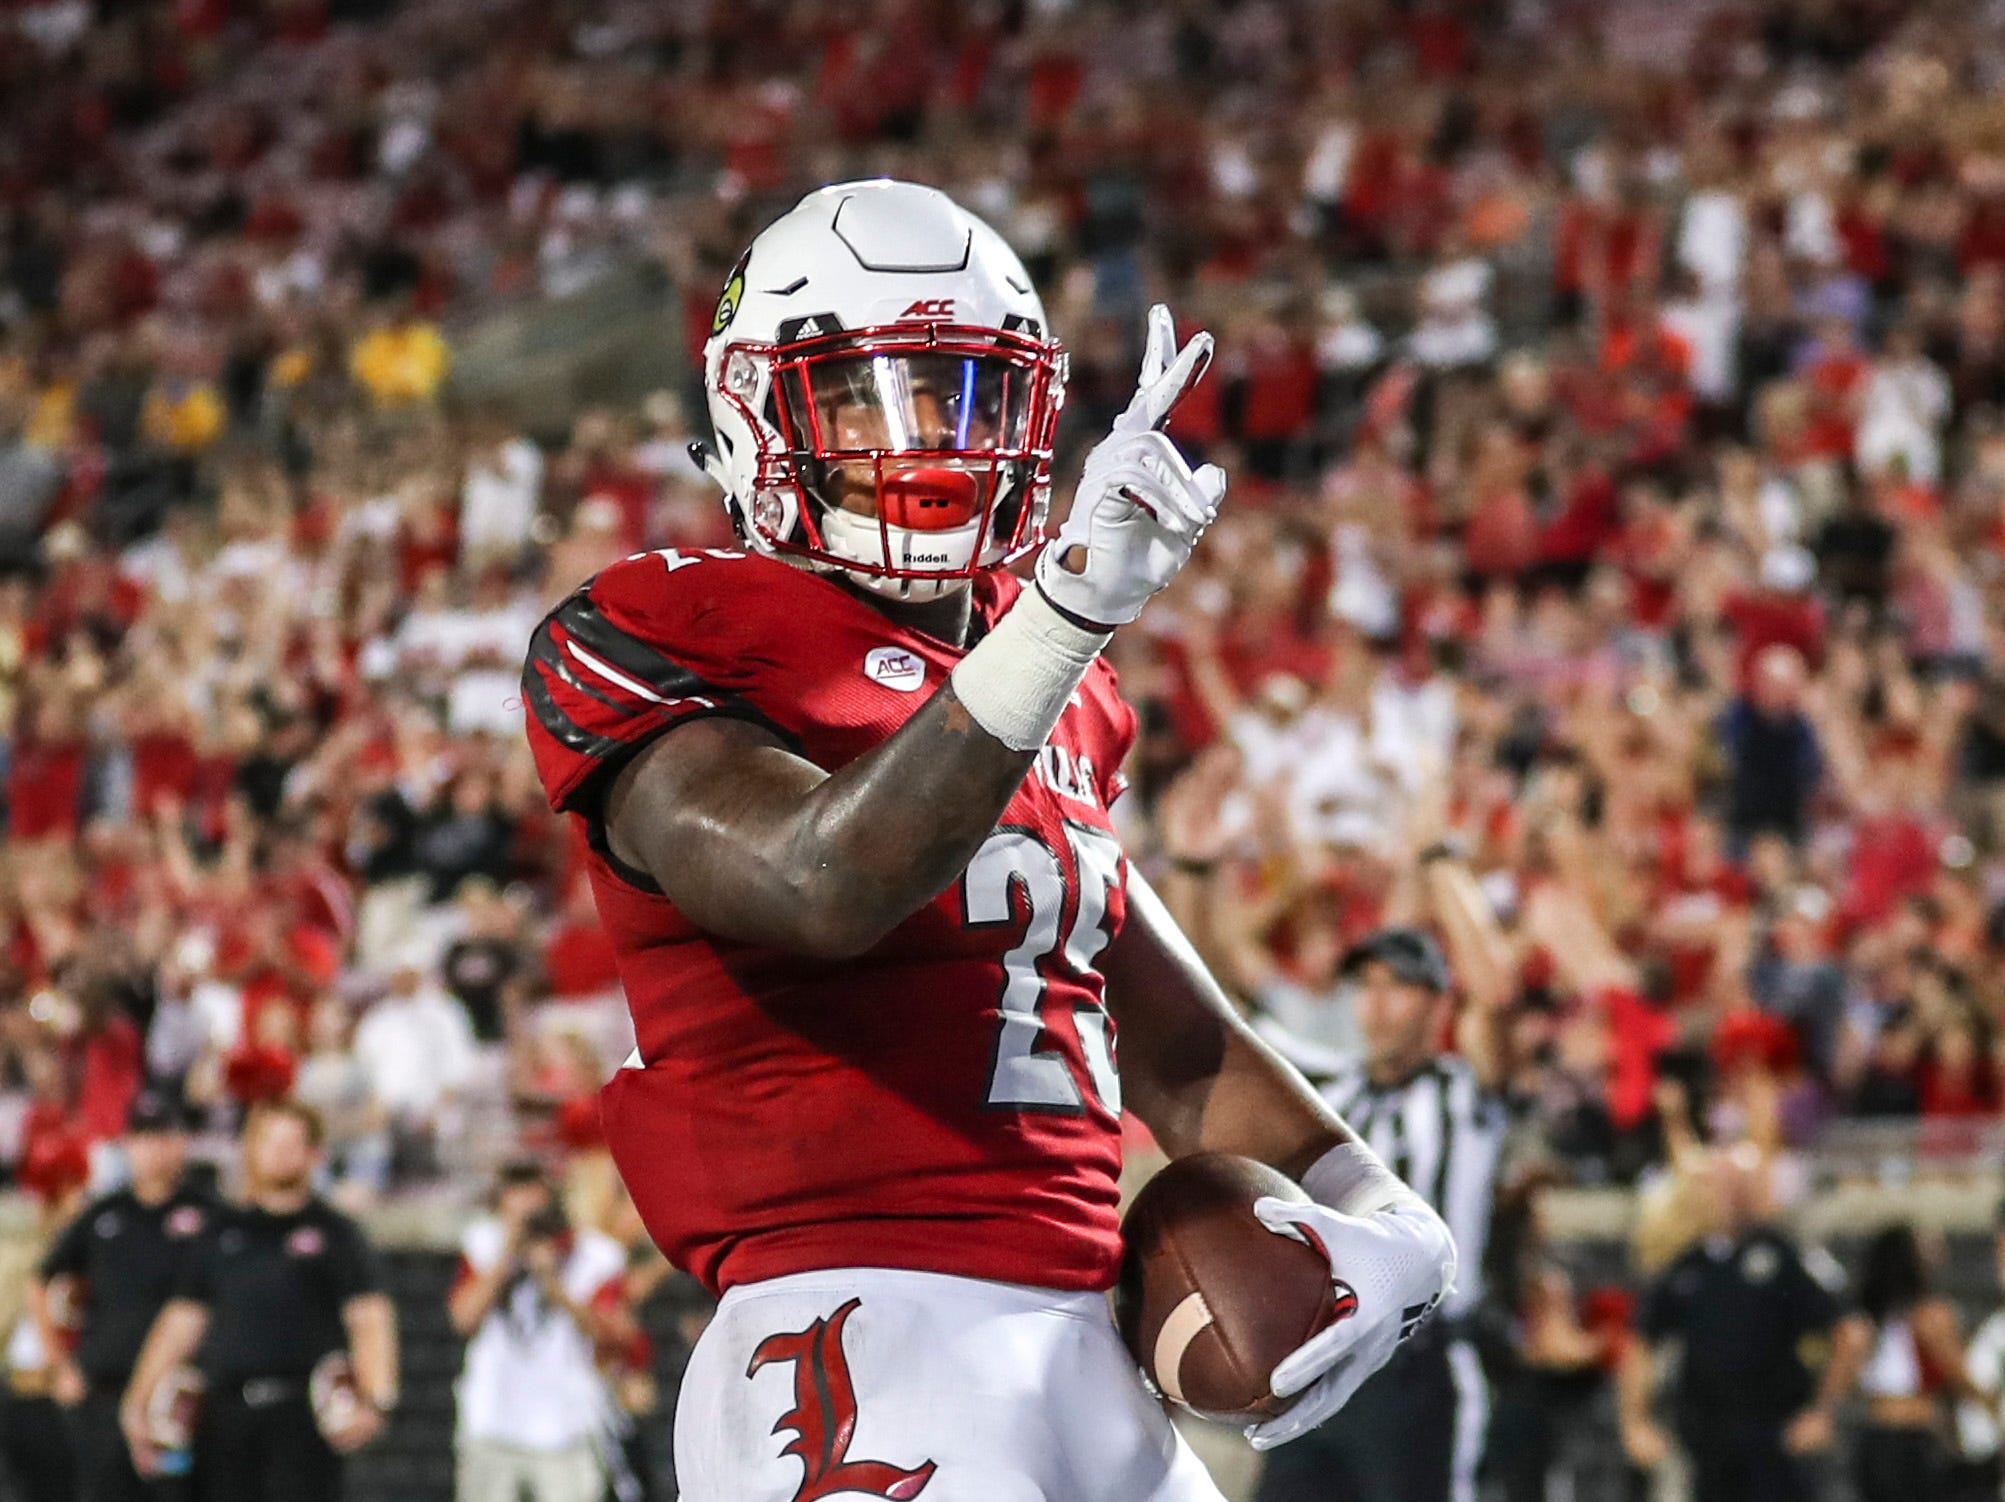 Louisville's Dae Williams gets his second touchdown of the game put the Cardinals ahead of Western Kentucky 20-17 late in the fourth quarter Saturday, Sept. 15, 2018.